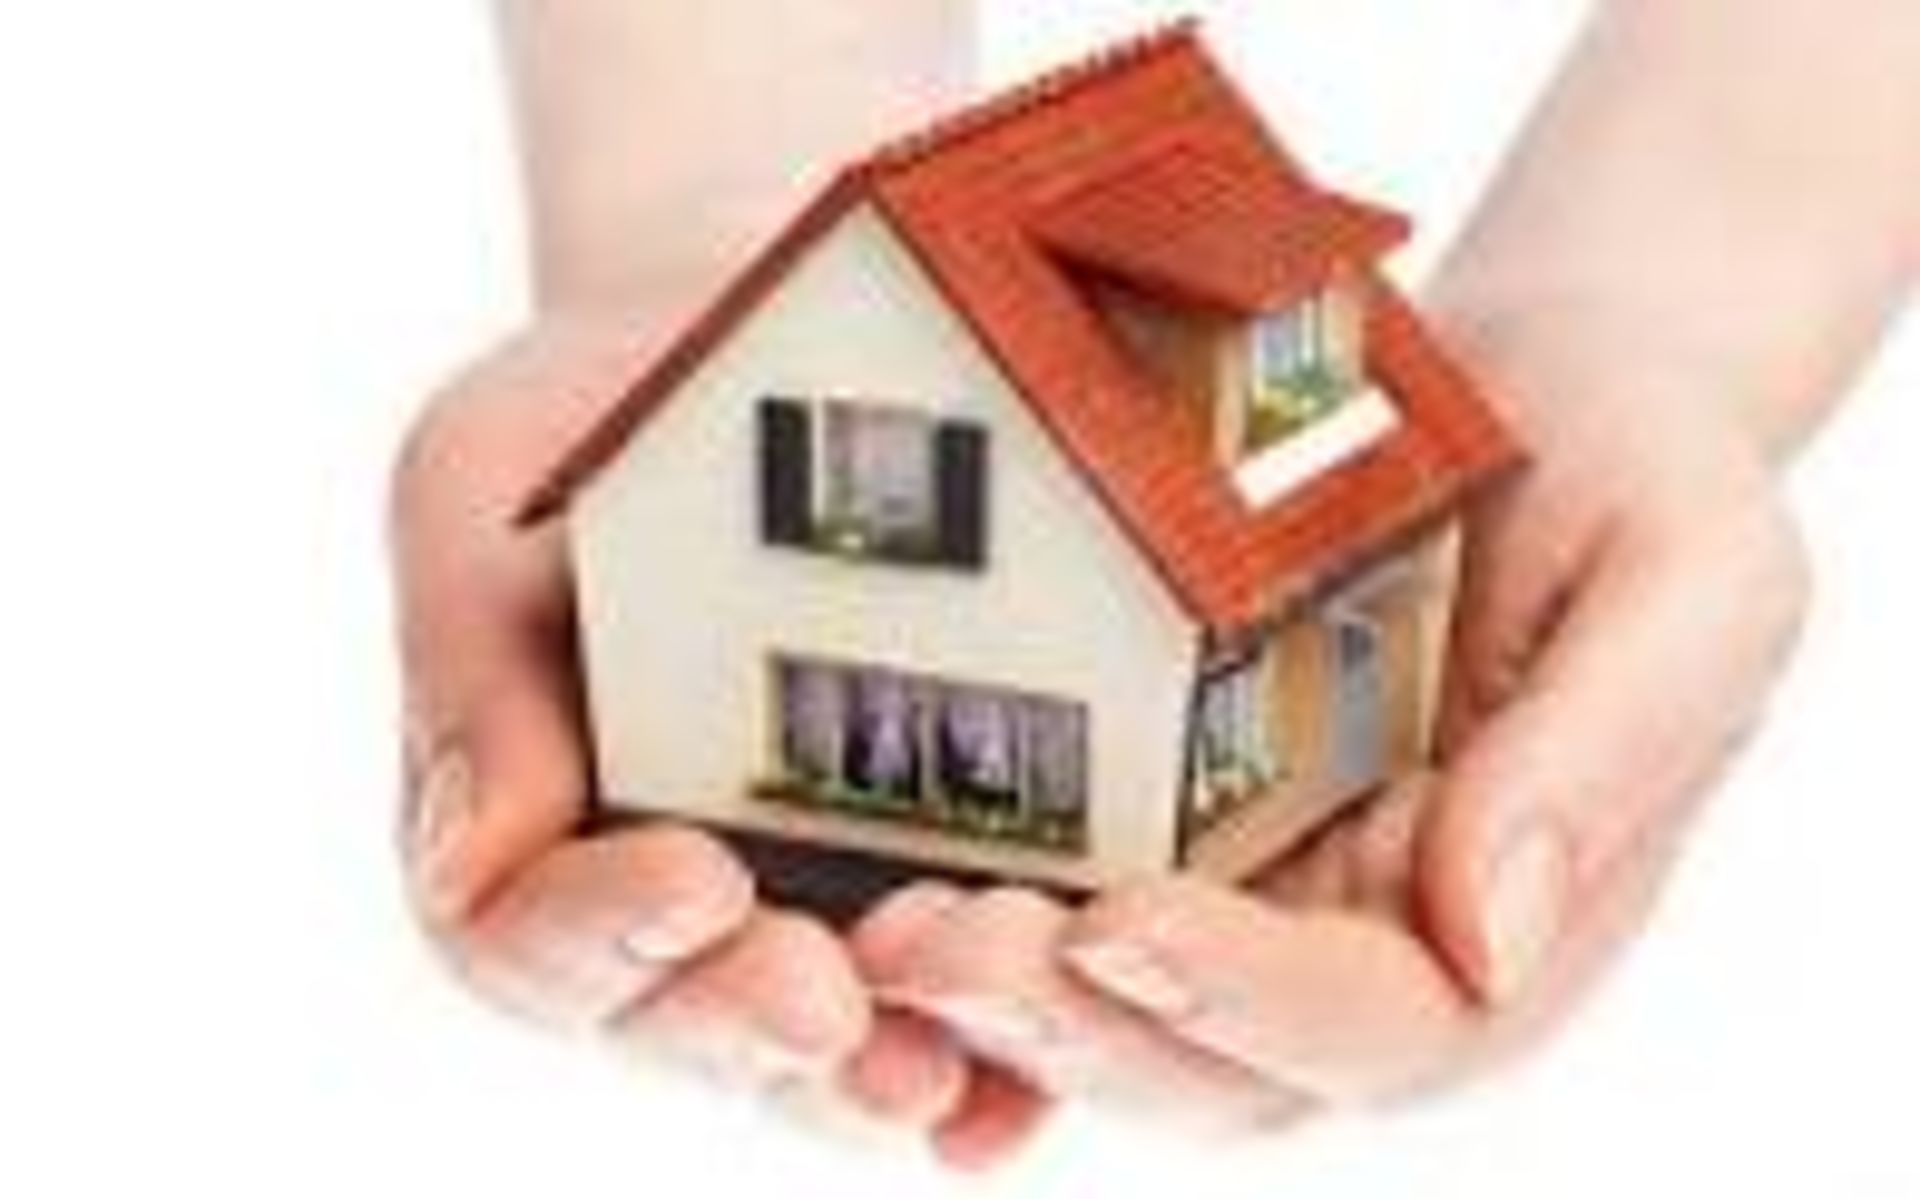 HOW TO MAKE SURE YOUR BUYING A HOME IN A SAFE NEIGHBORHOOD